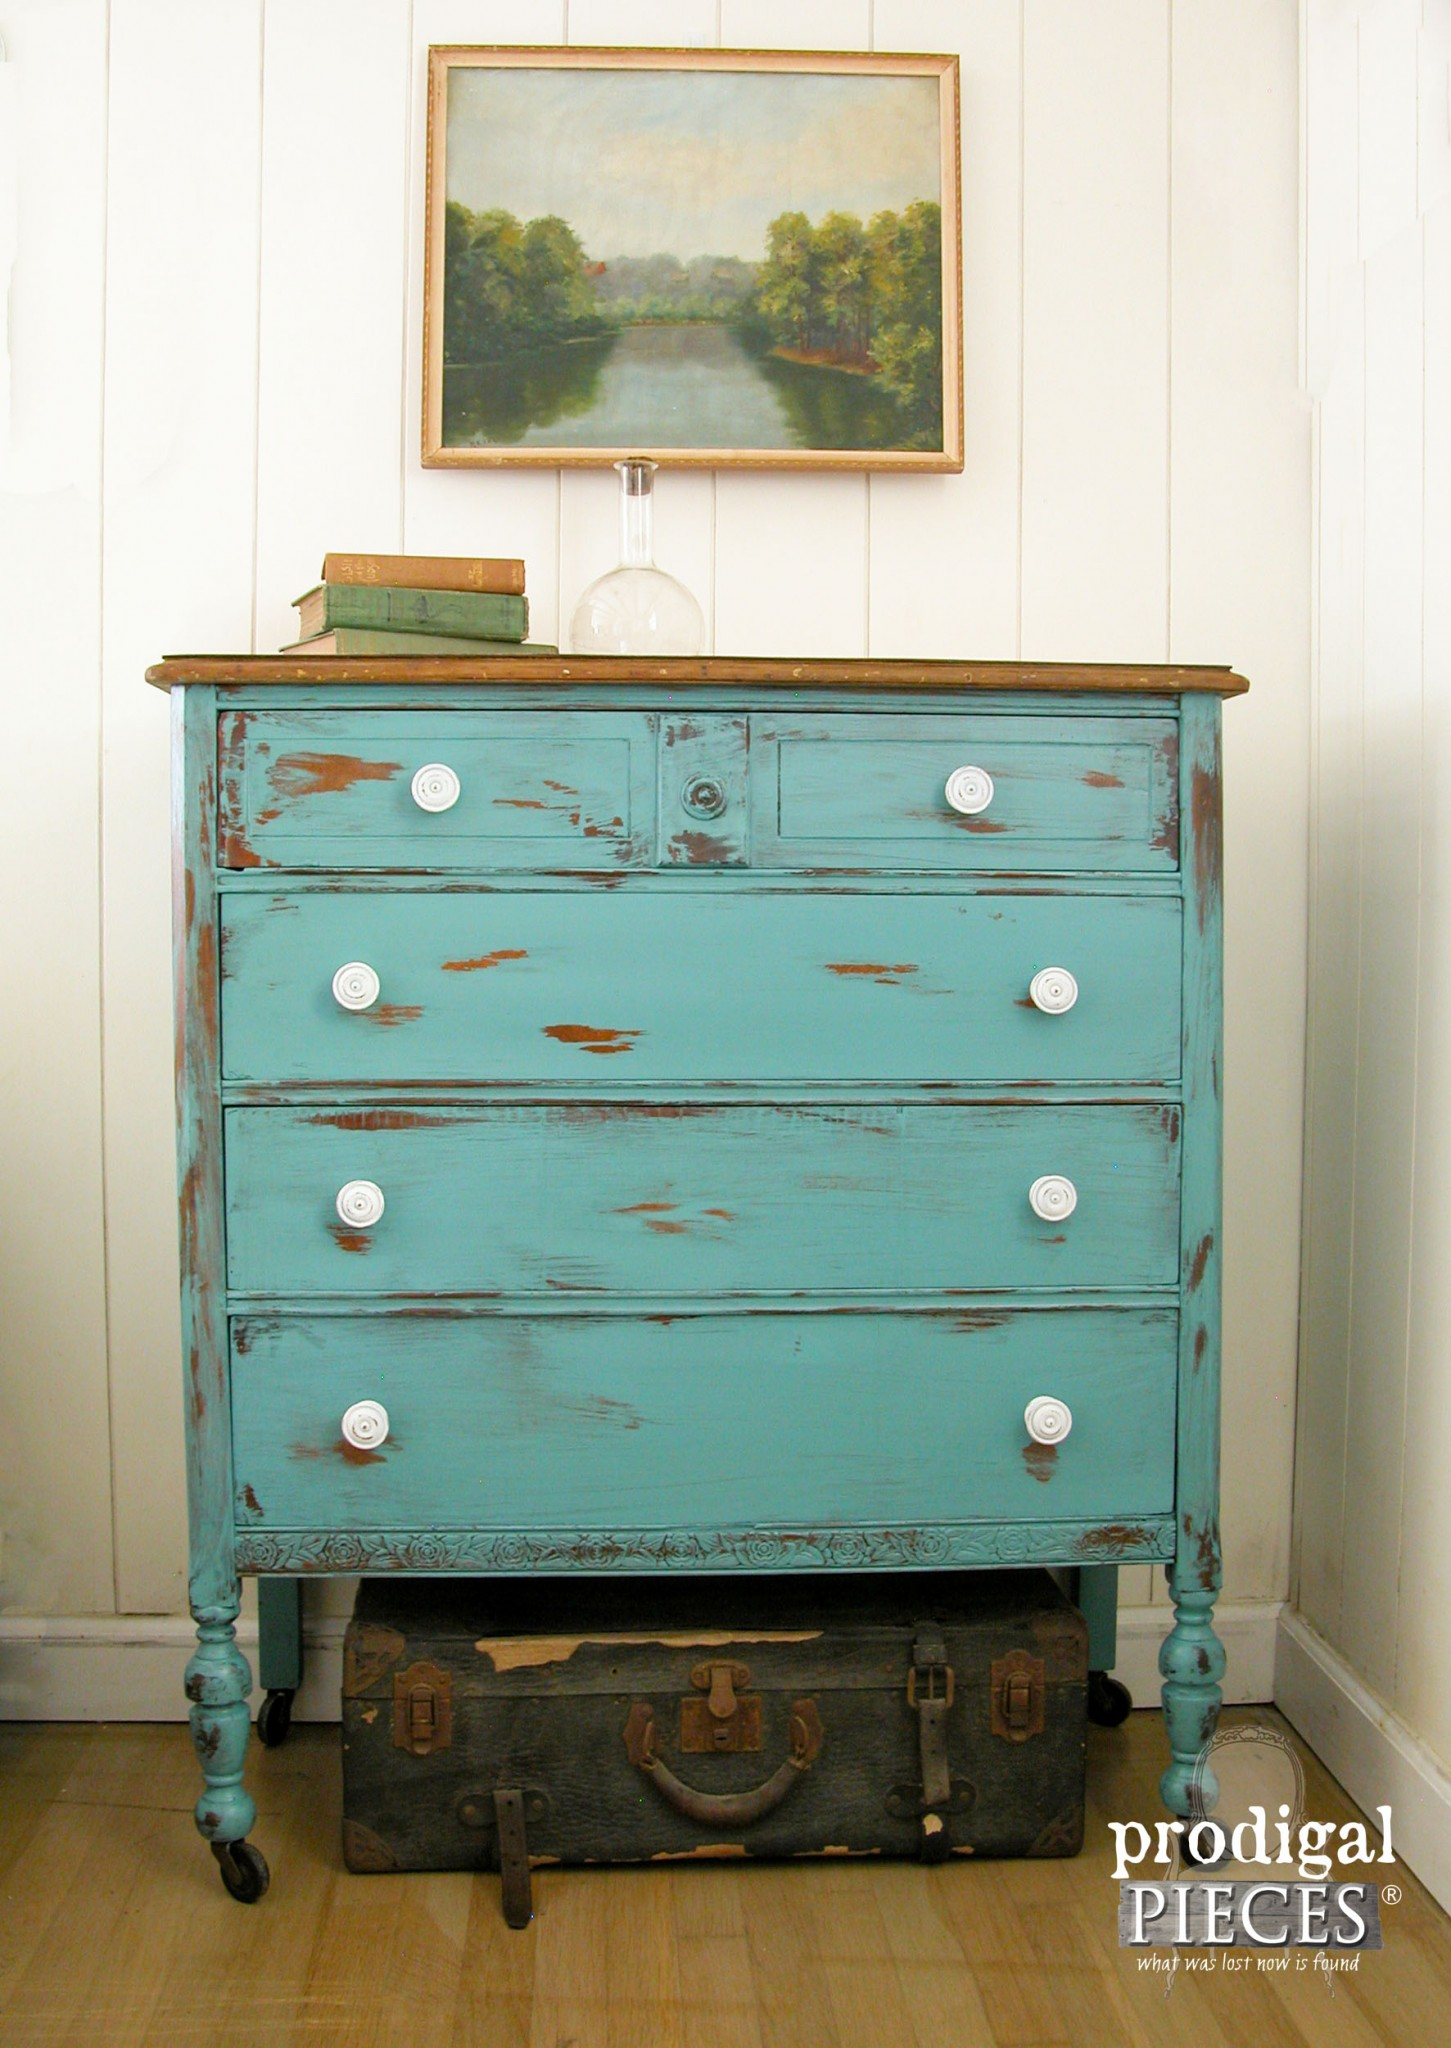 Get the Look of Distressed Paint with Petroleum Jelly | Aqua Teal Chest of Drawers by Prodigal Pieces | www.prodigalpieces.com